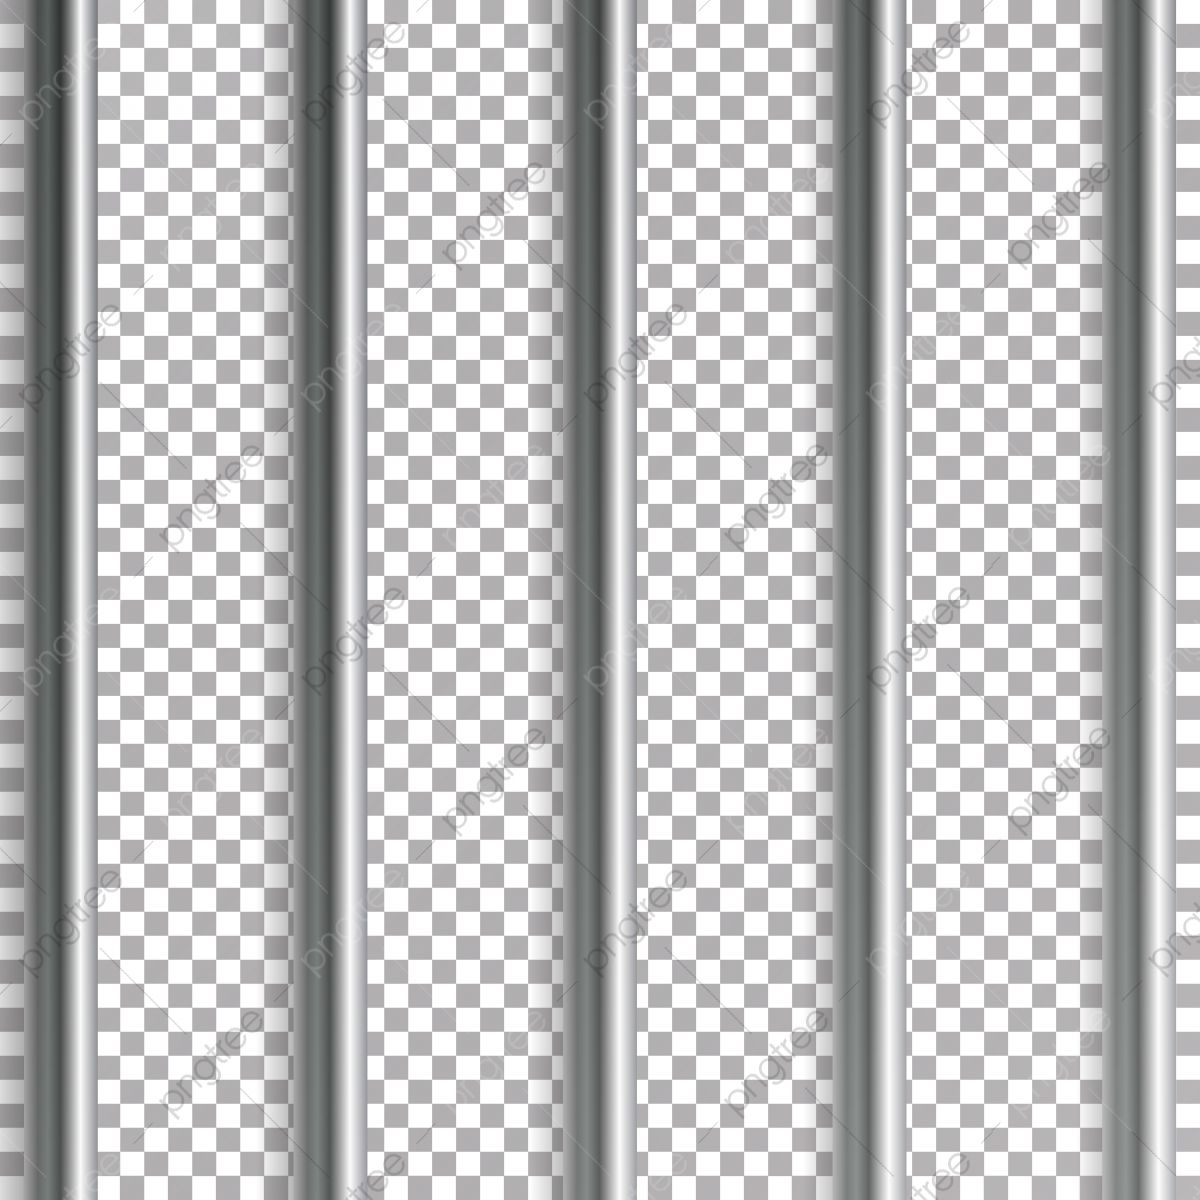 Jail Bars Vector Illustration Isolated On Transparent Background Iron Or Steel Prison House Grid Illustration Prison Clipart Bars Behind Png And Vector With Jail Bars Vector Illustration Geometric Pattern Background